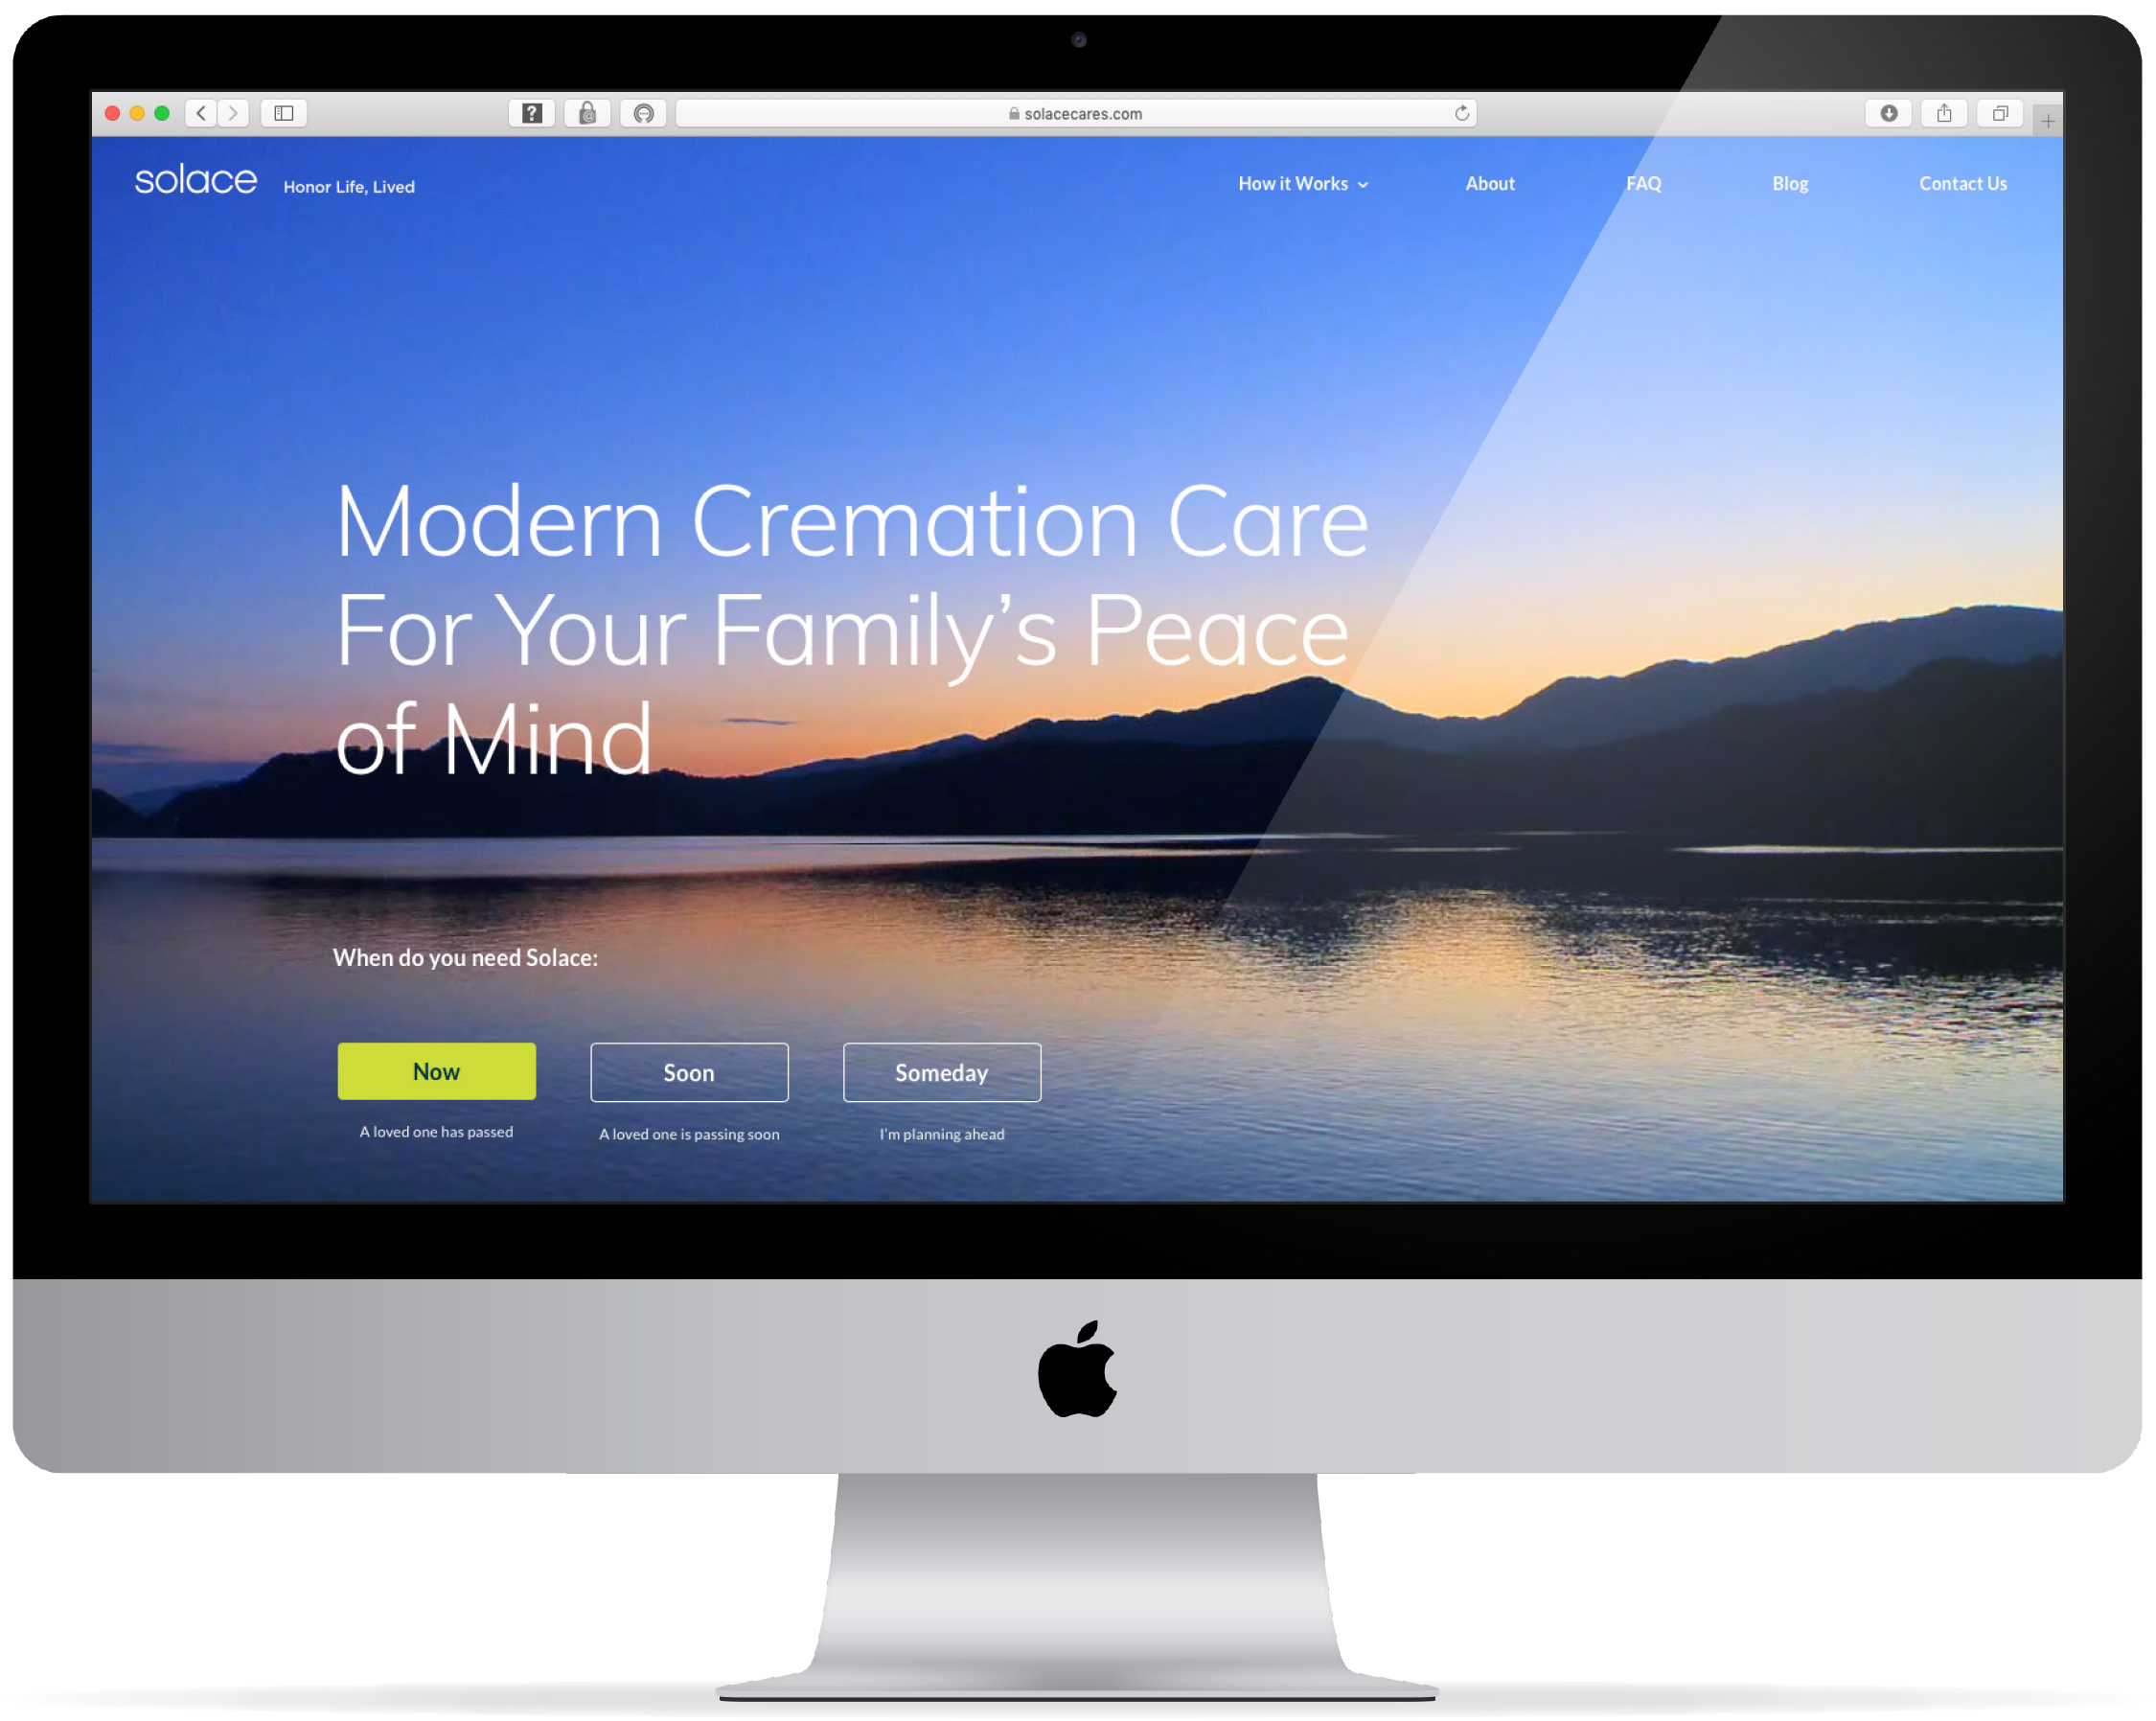 Solace cremation homepage